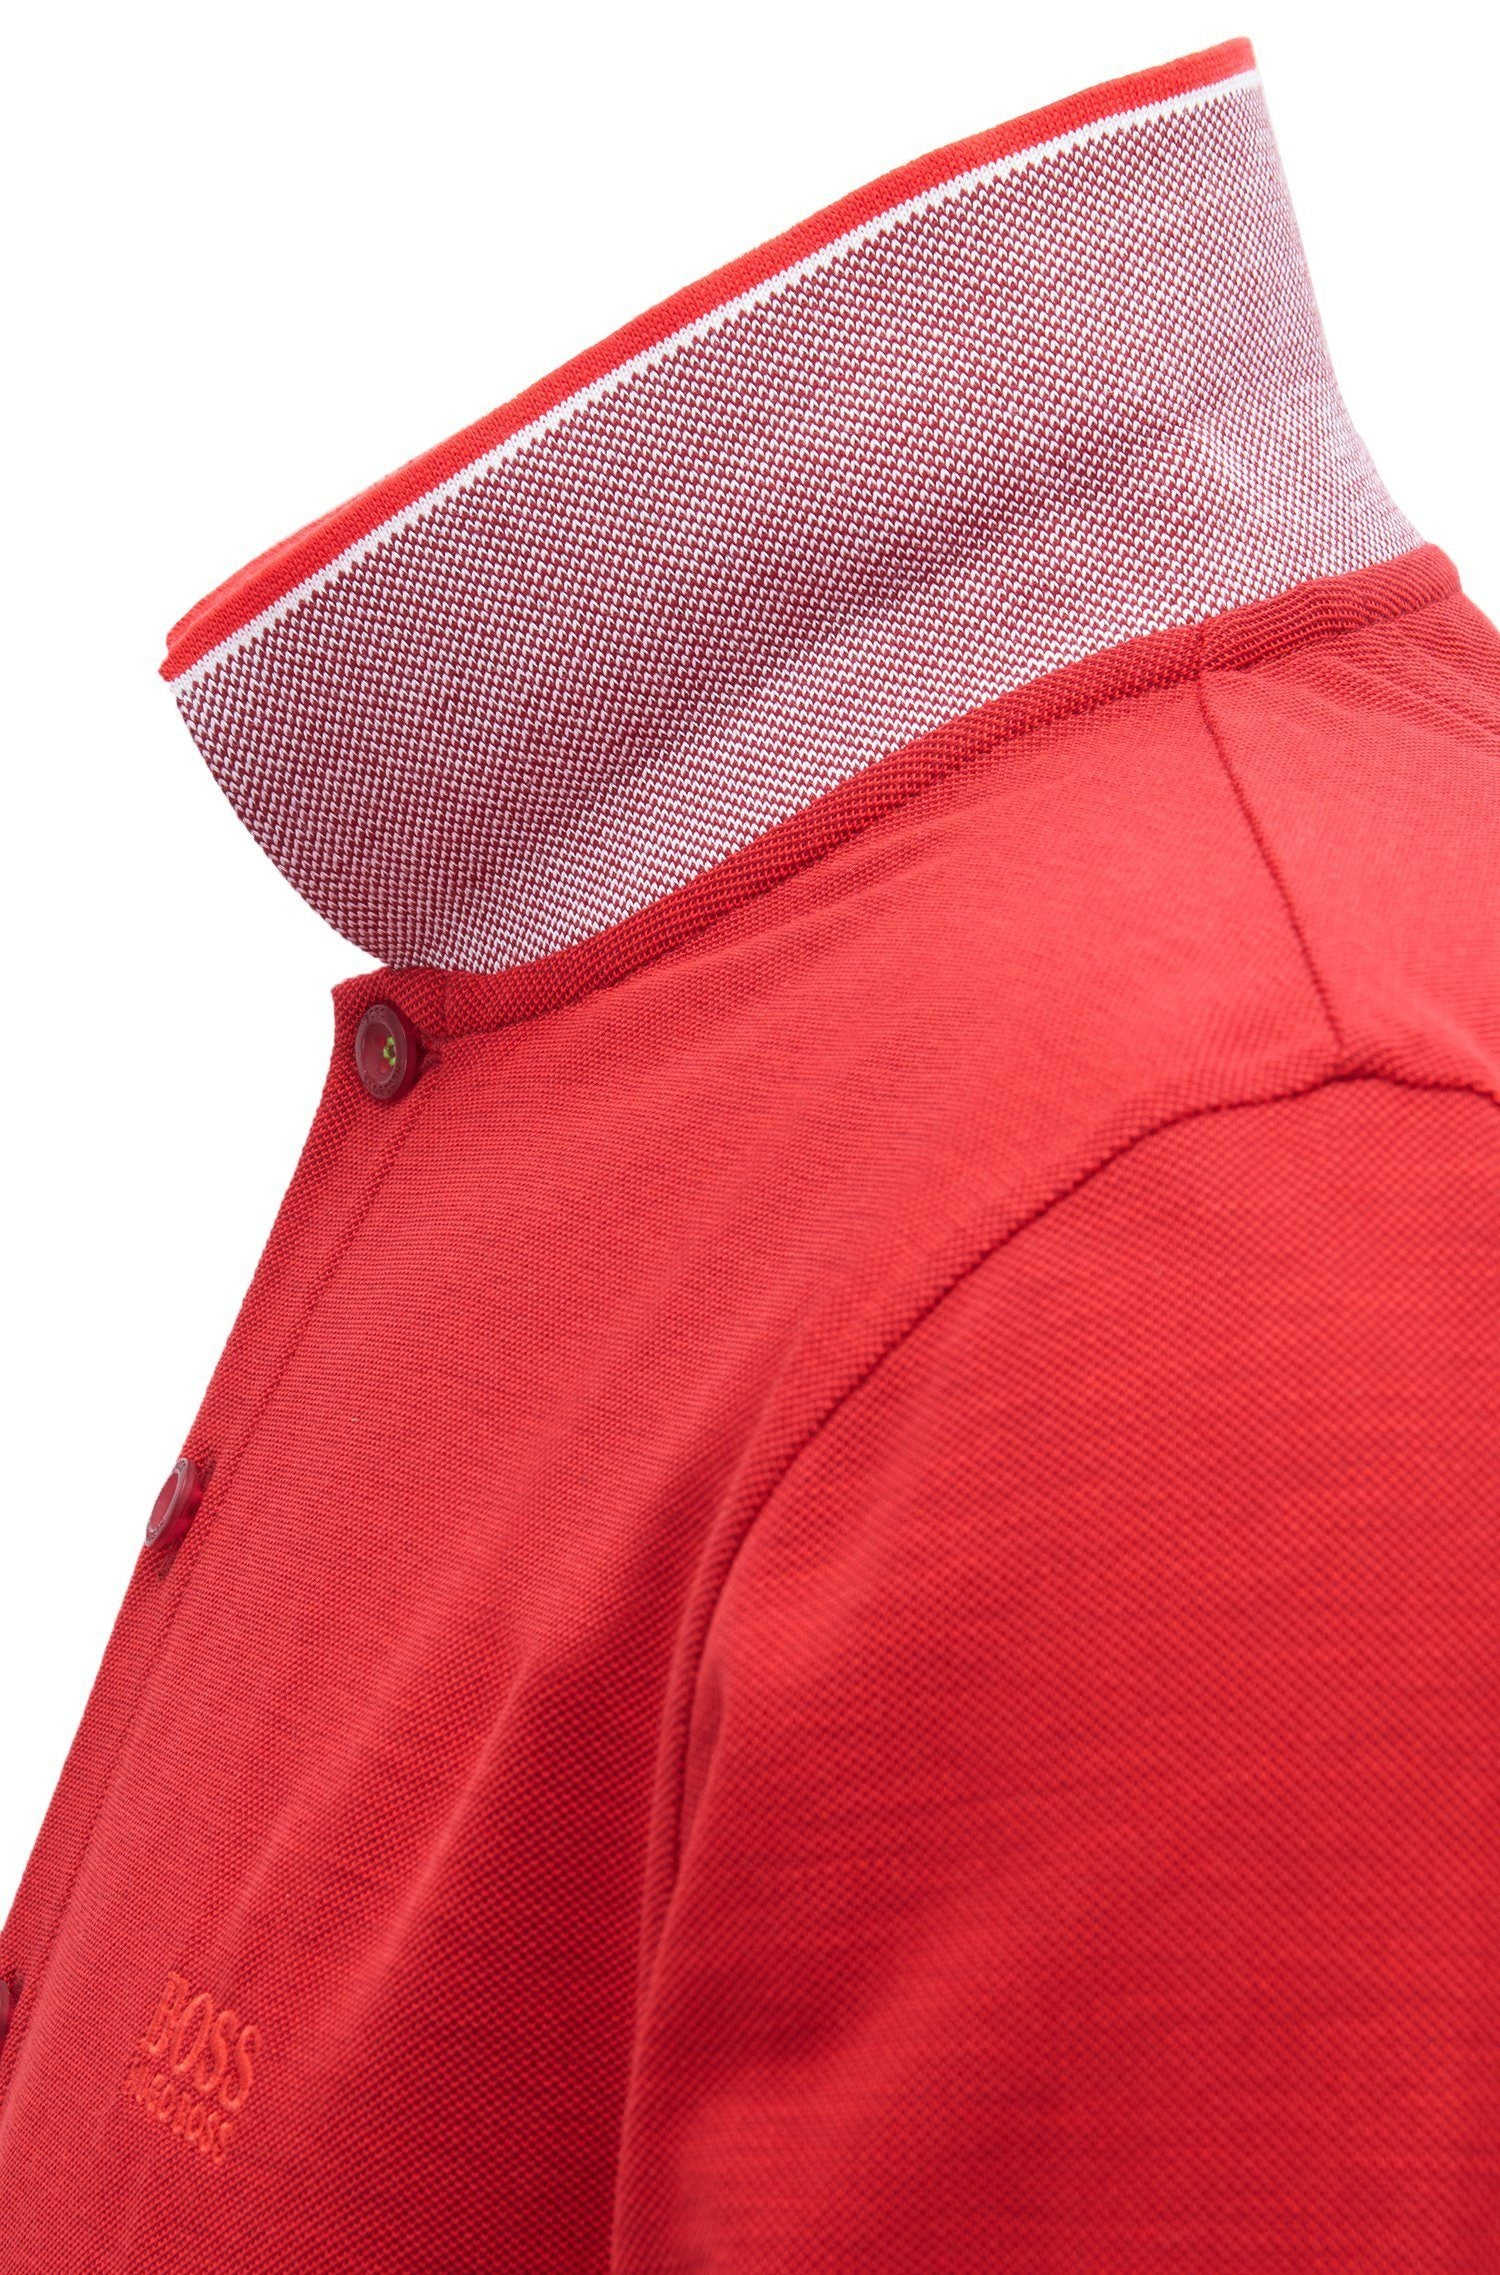 BOSS Athleisure Slim Fit Pleesy Polo Shirt in Red